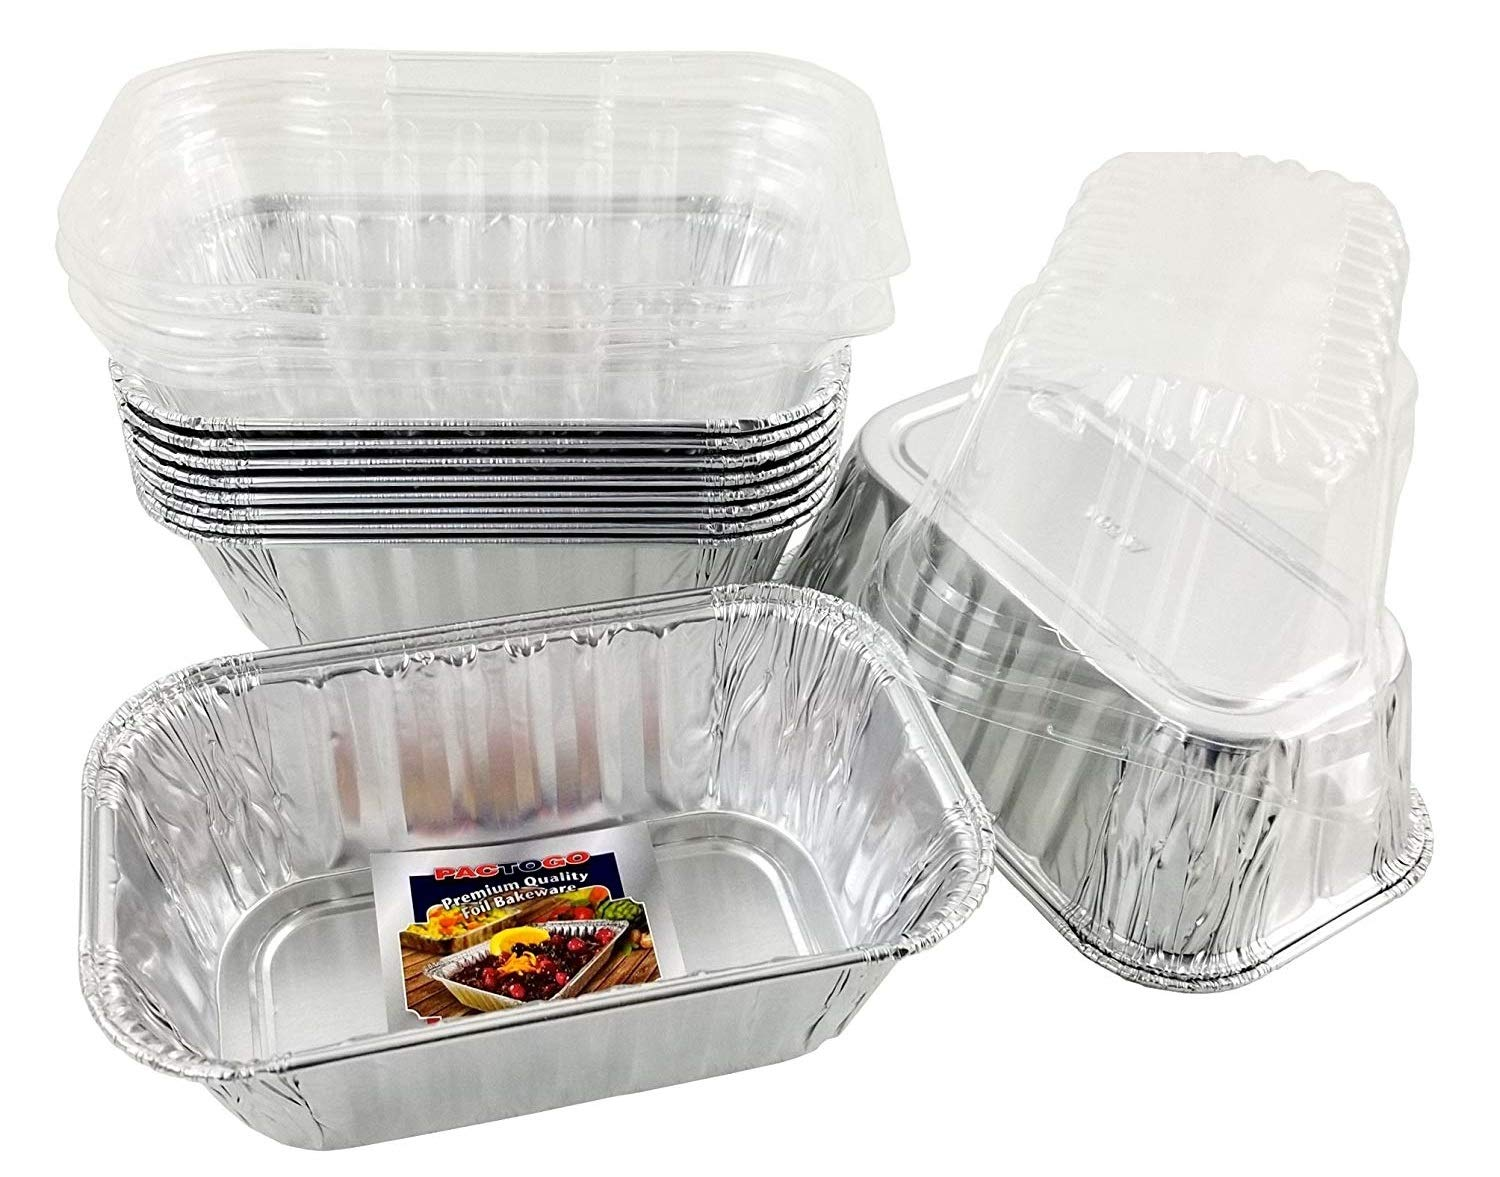 Pactogo Disposable 1 lb. Aluminum Foil Mini Loaf Pans with Clear Dome Lids (Pack of 100 Sets) by PACTOGO (Image #1)